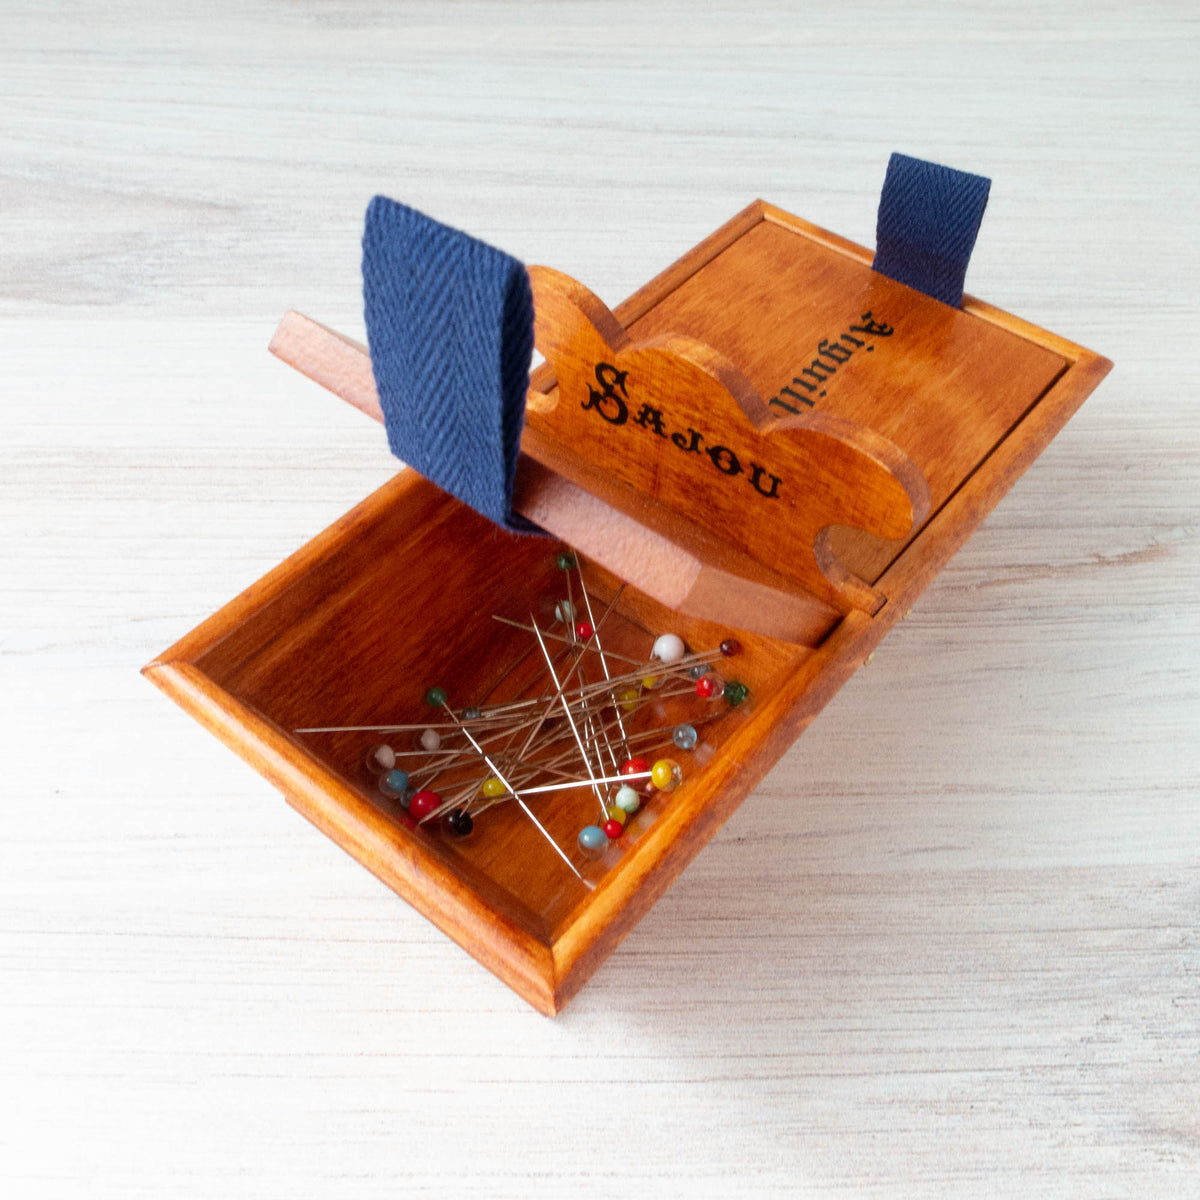 Sajou Wooden Pins and Needles Storage Box Pincushion - Snuggly Monkey